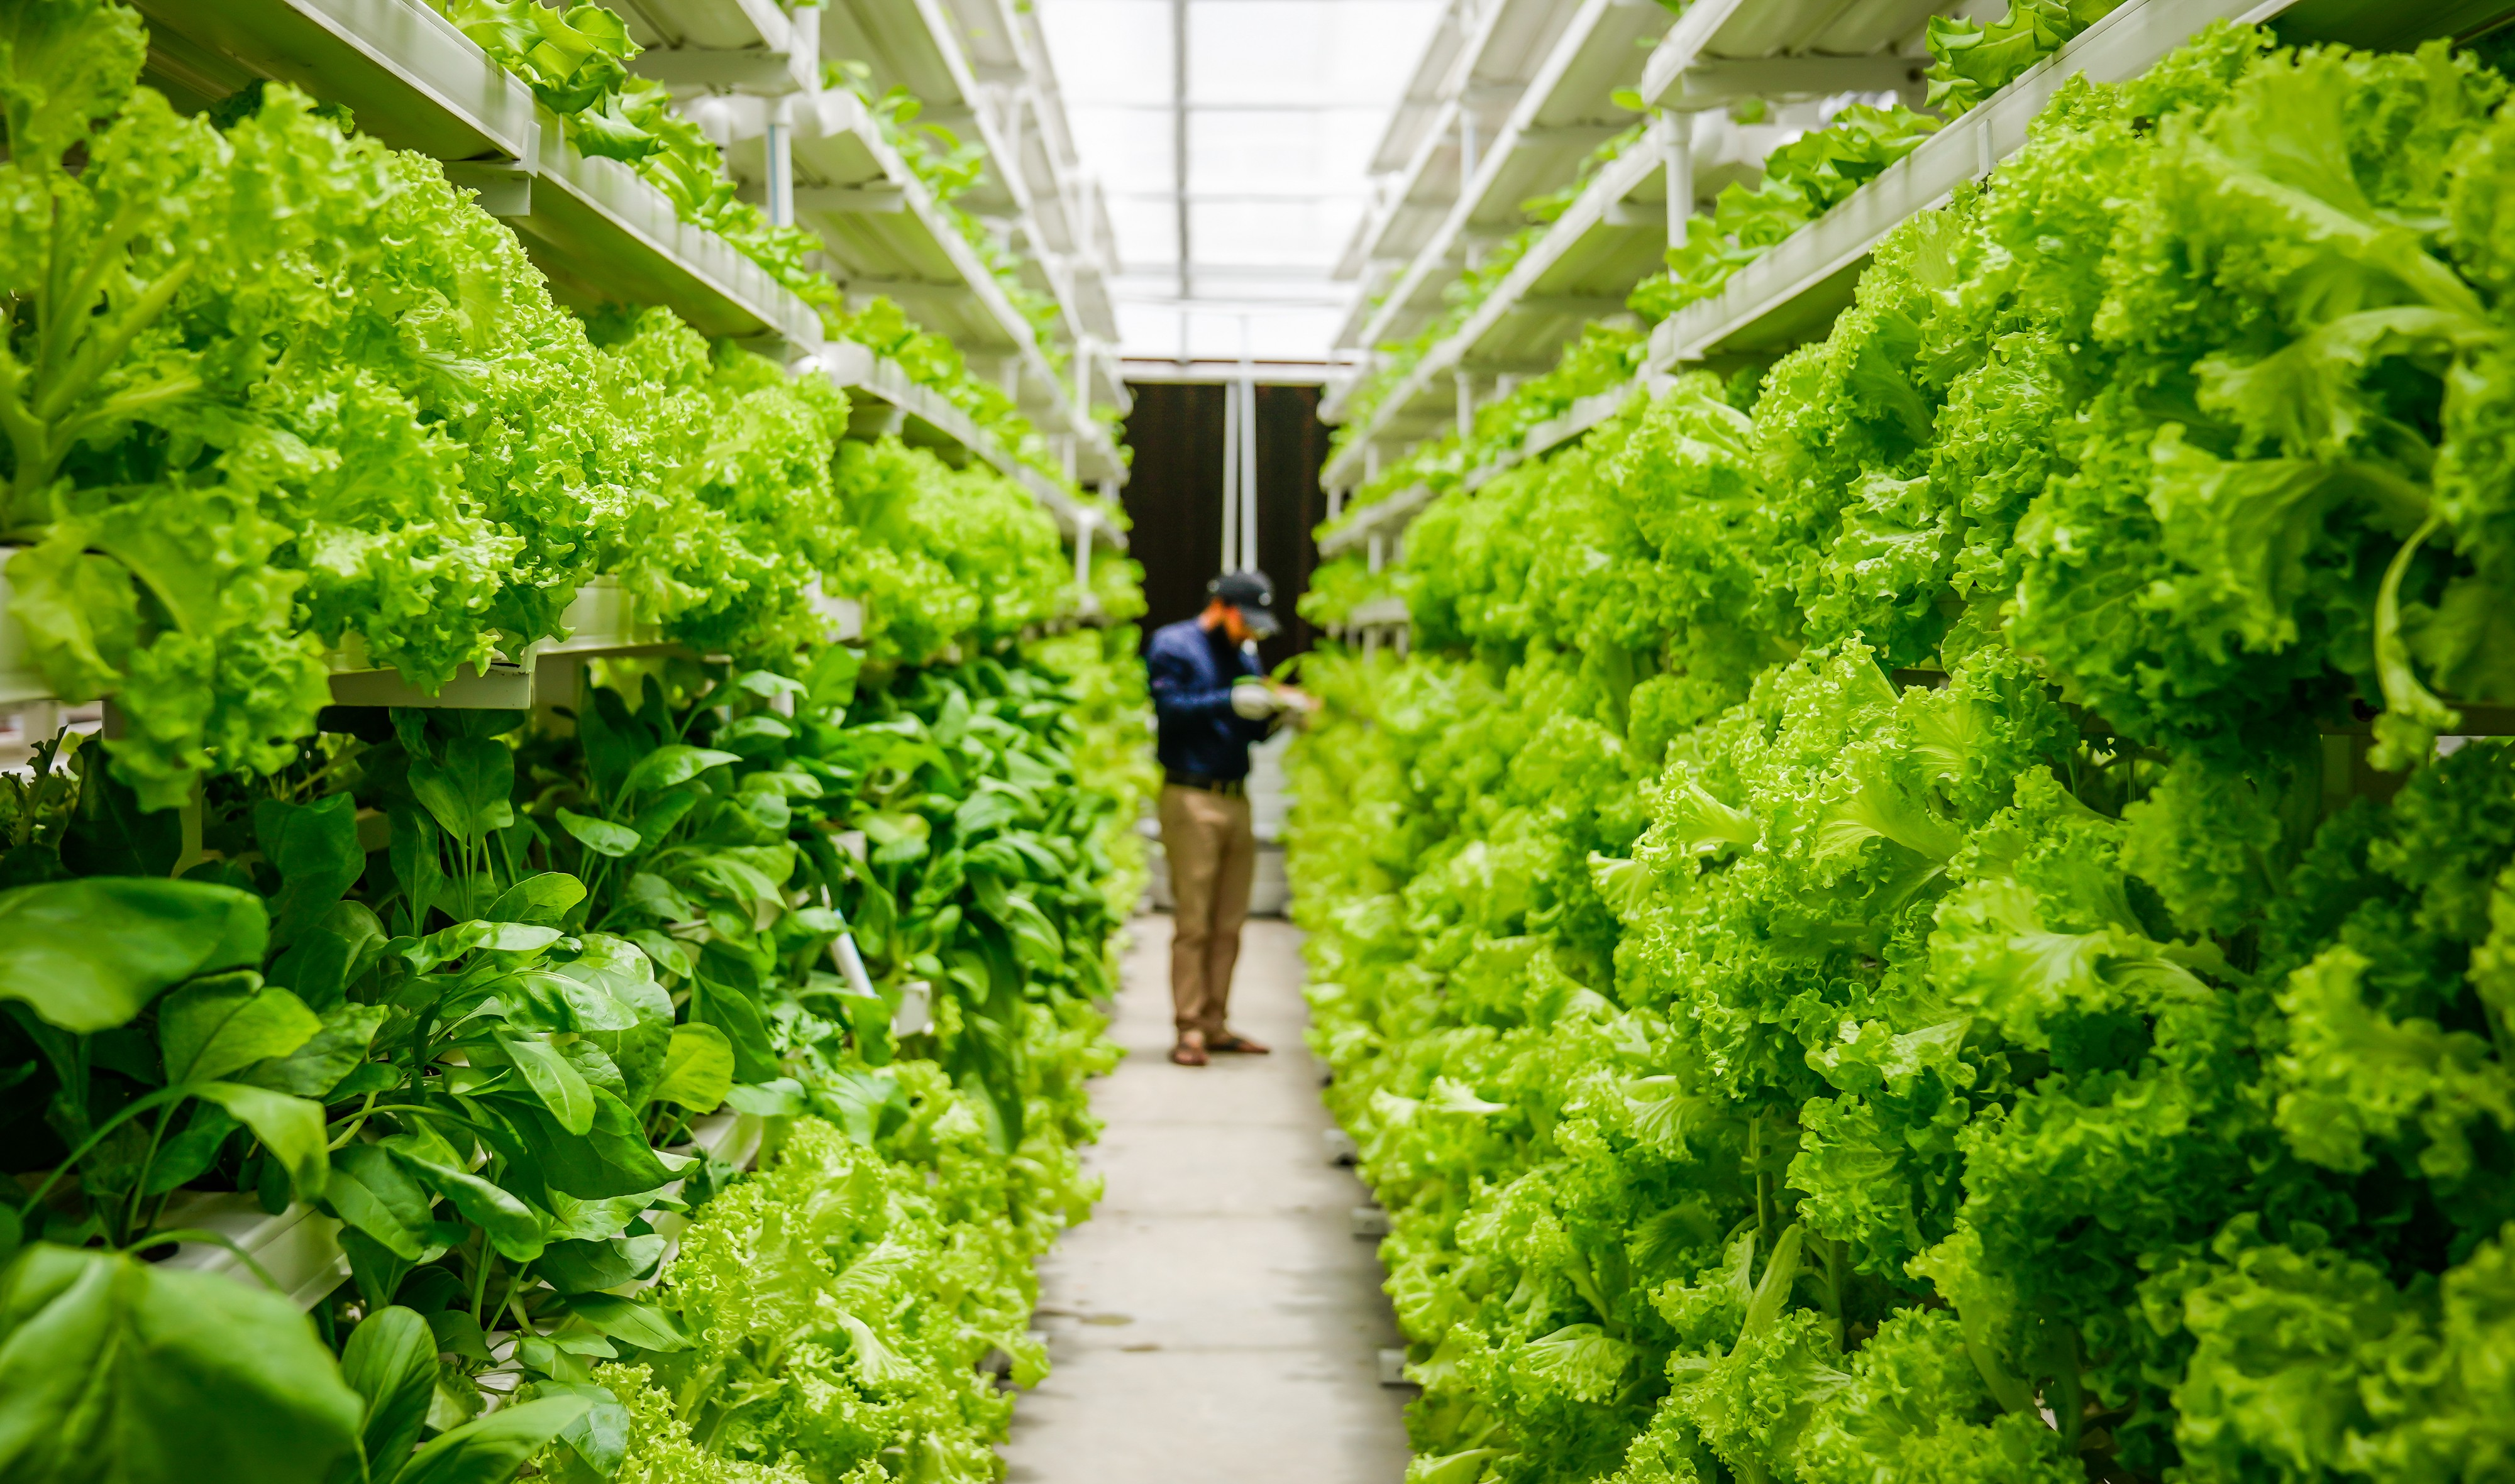 COVID-19 Impact on Vertical Farming in Semiconductors and Electronics Industry